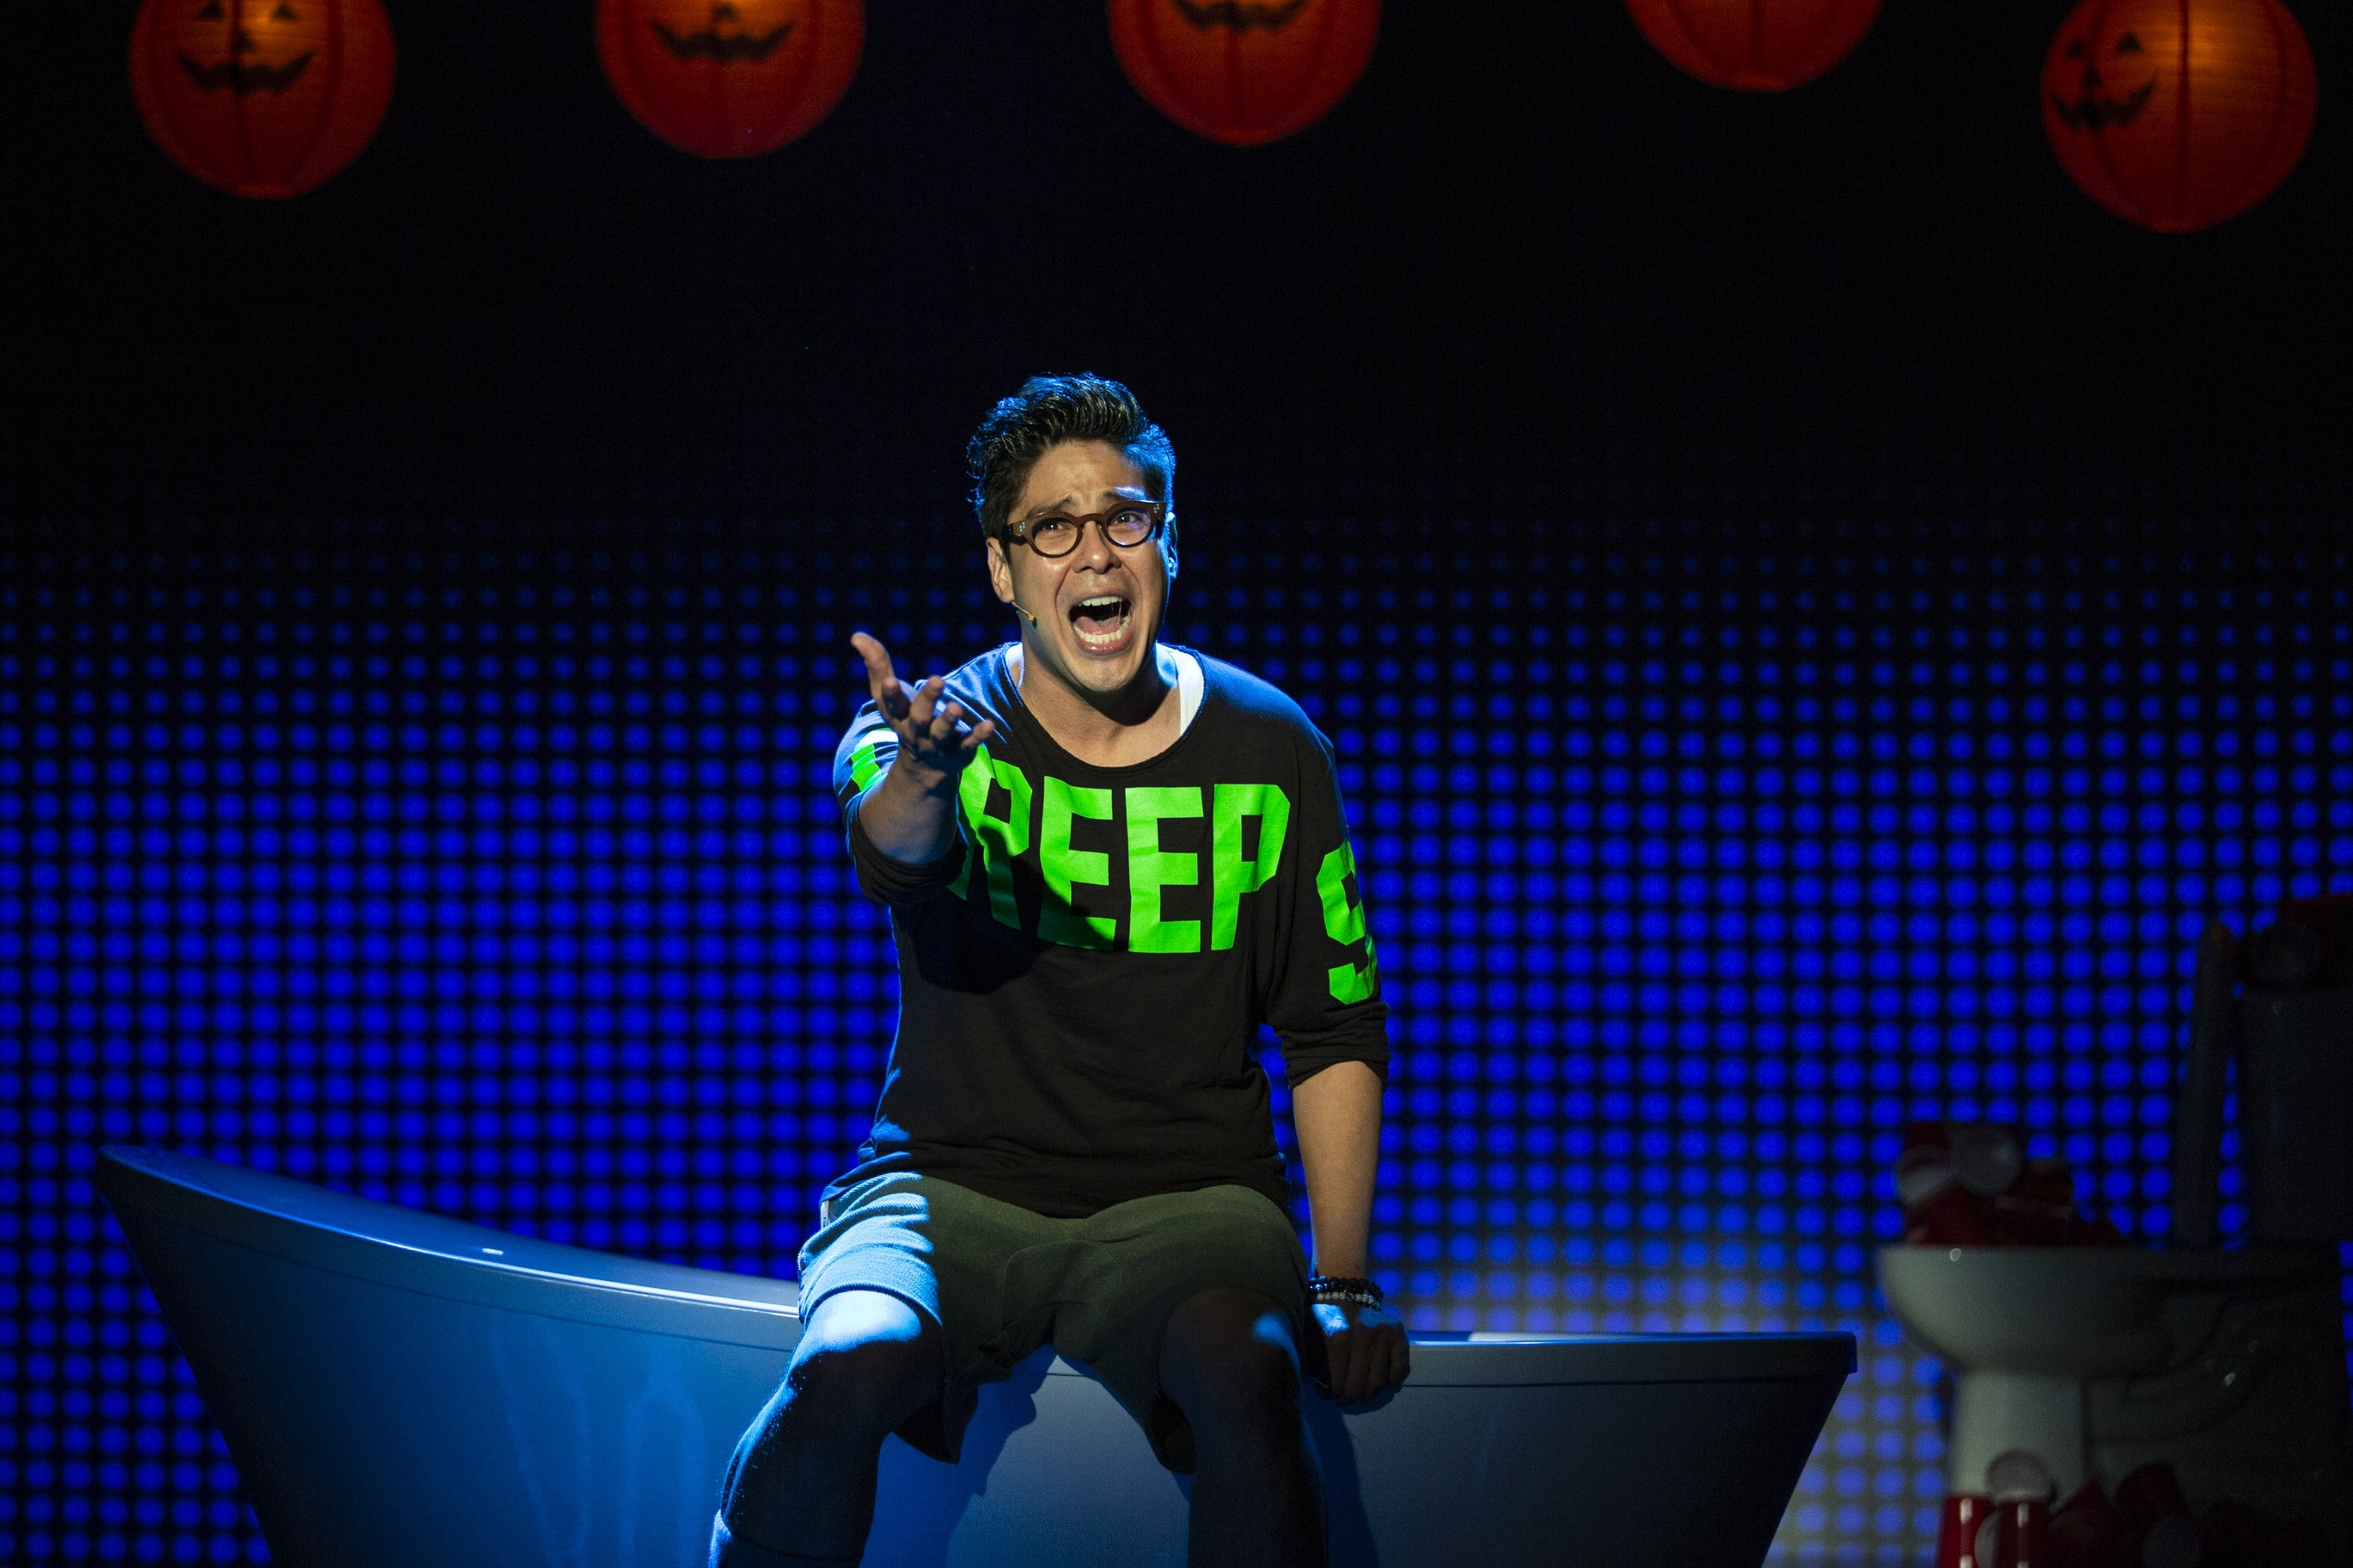 George Salazar in Be More Chill. Photo by Maria Baranova.